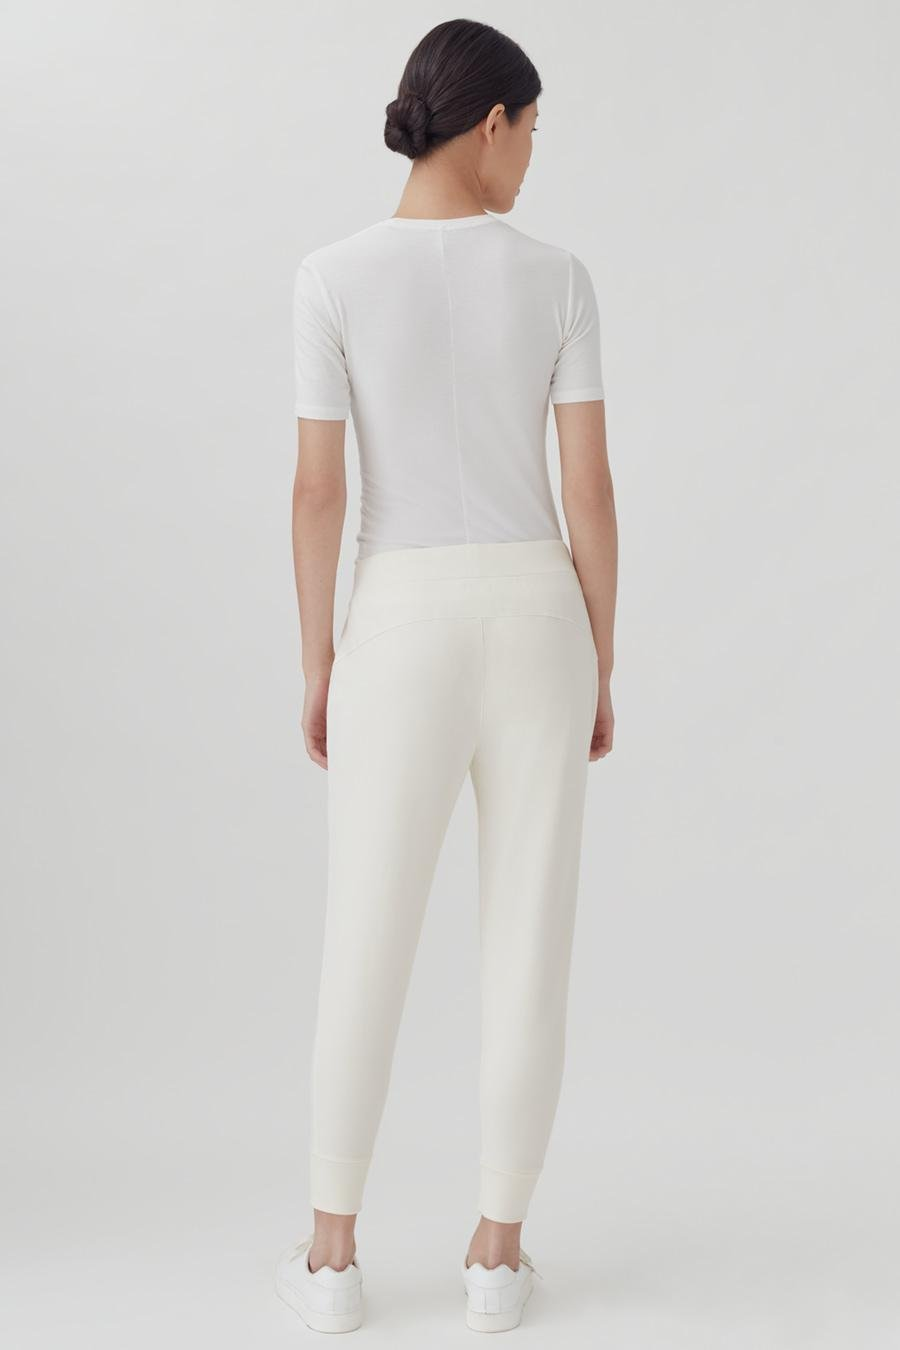 Women's French Terry Tapered Lounge Pant in Ecru   Size: 2